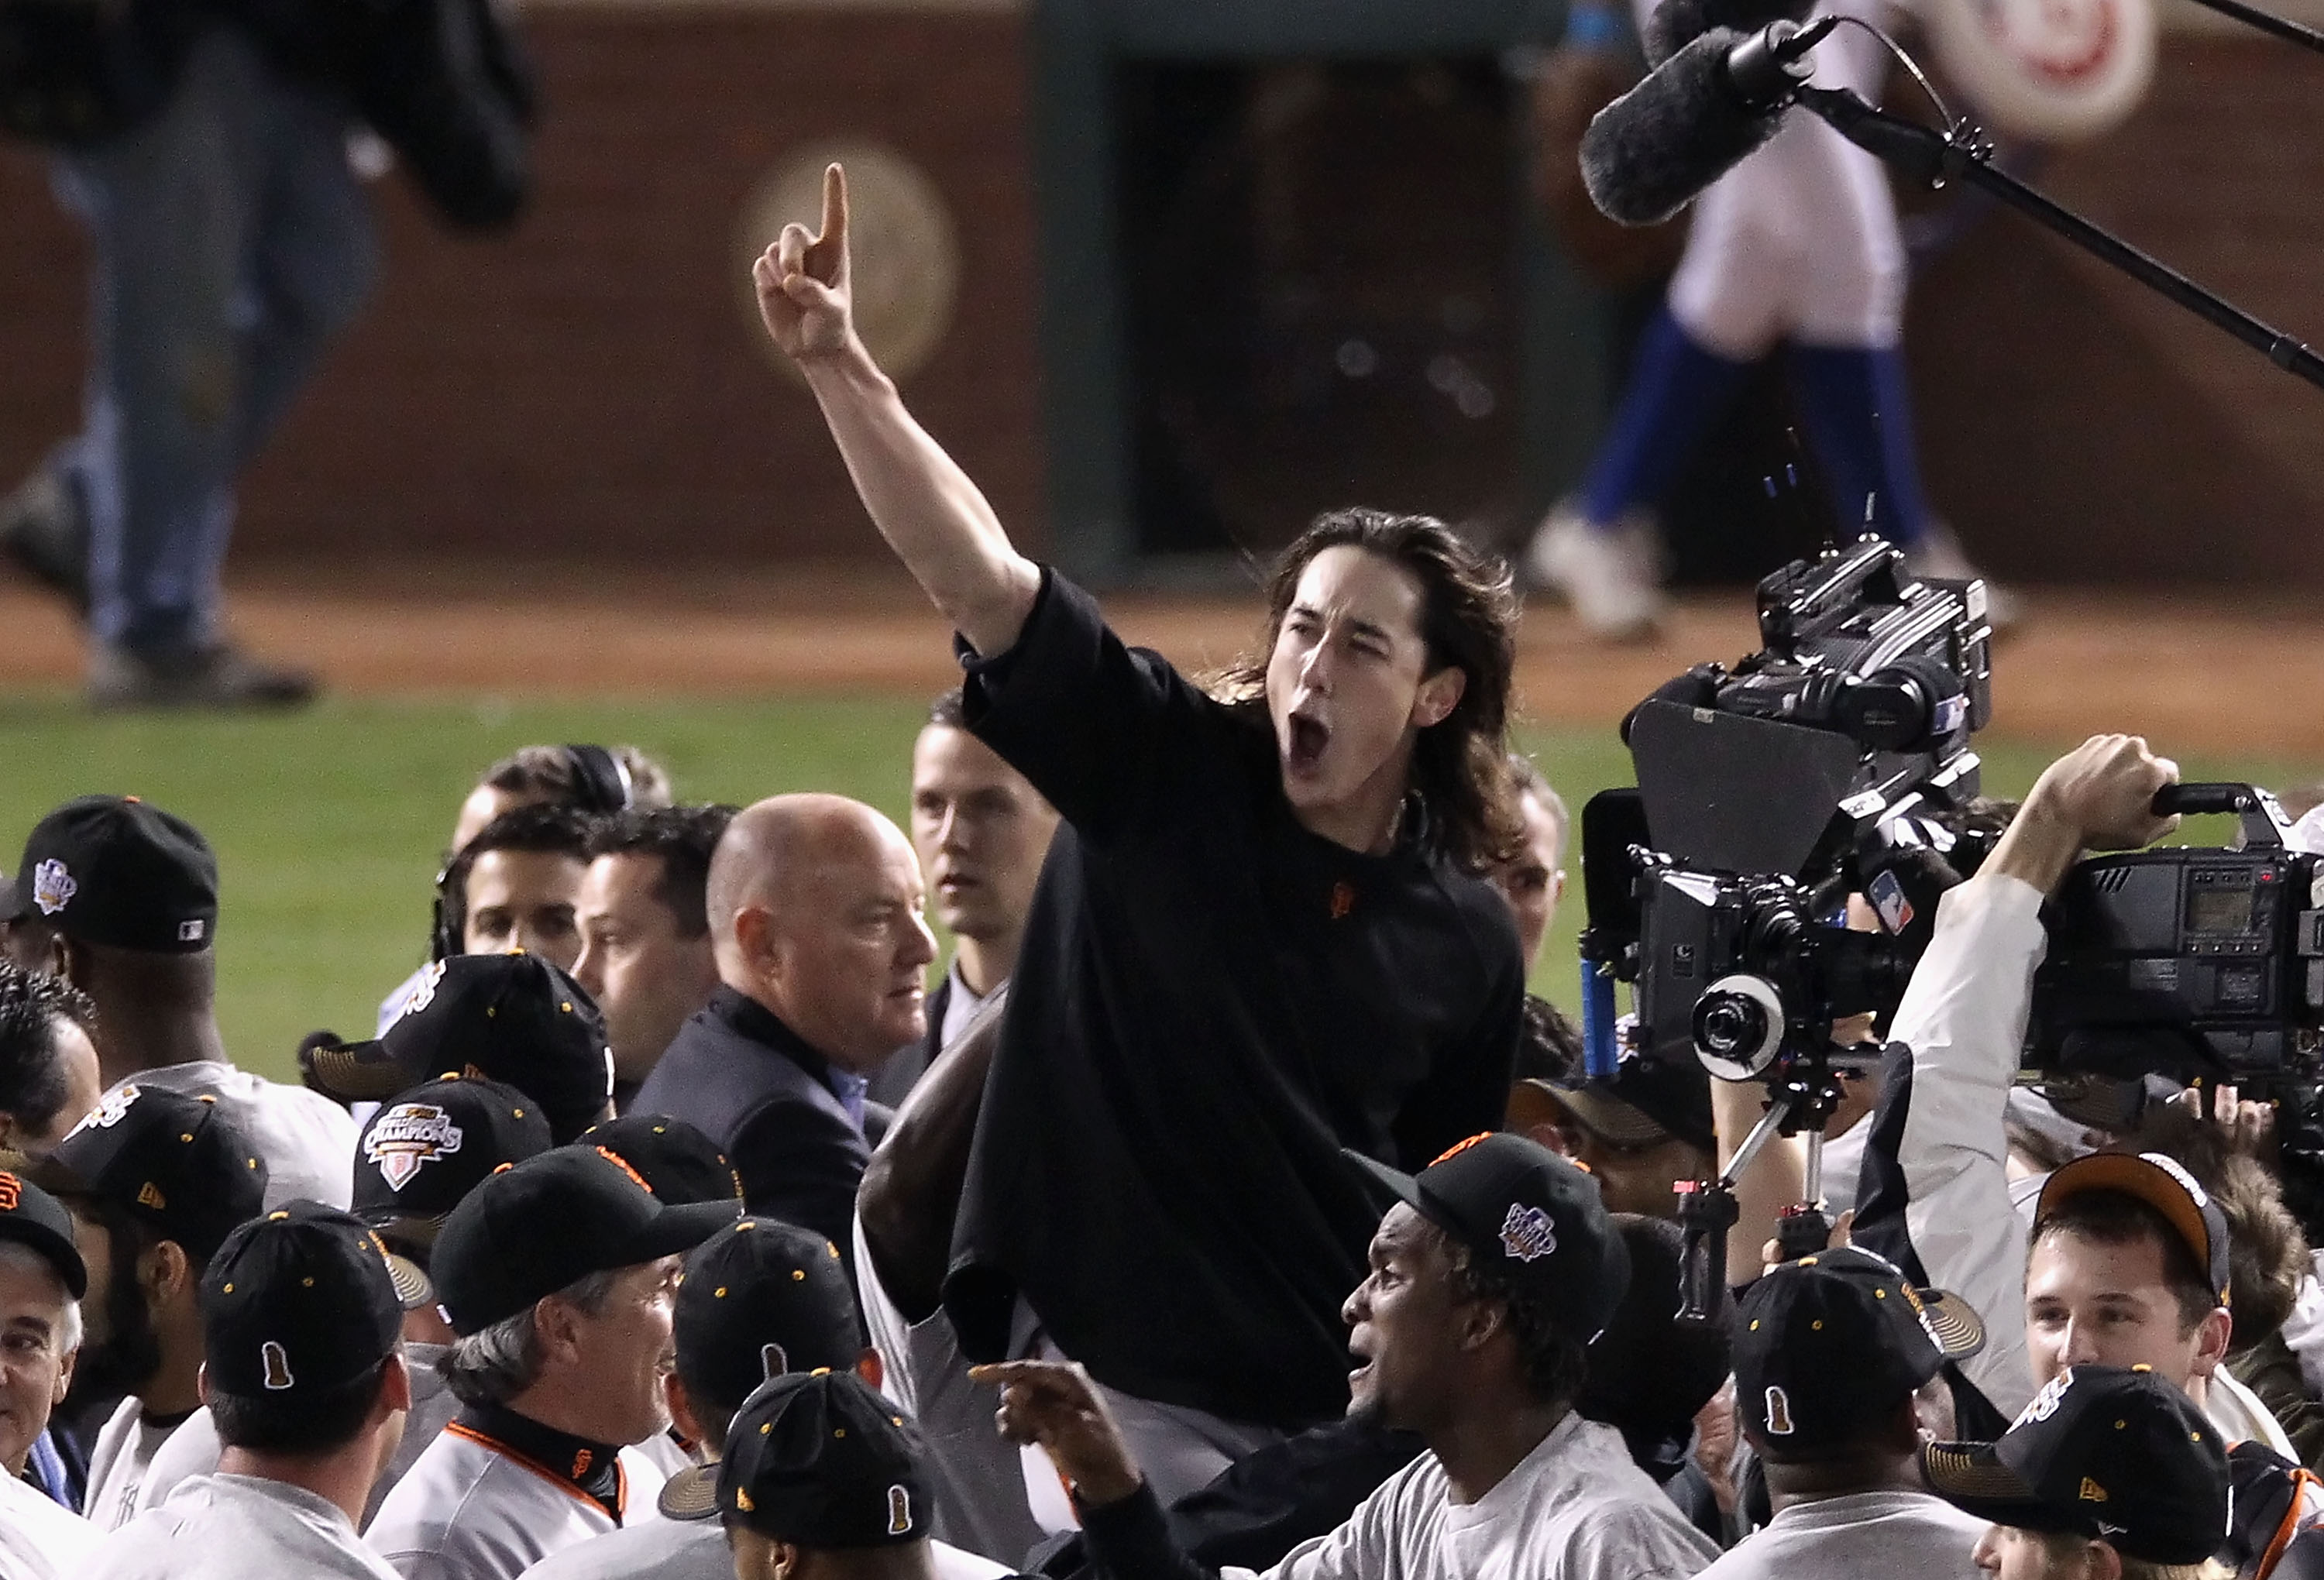 ARLINGTON, TX - NOVEMBER 01:  Pitcher Tim Lincecum #55 of the San Francisco Giants and teammates celebrate defeating the Texas Rangers 3-1 to win the 2010 MLB World Series at Rangers Ballpark in Arlington on November 1, 2010 in Arlington, Texas.  (Photo b